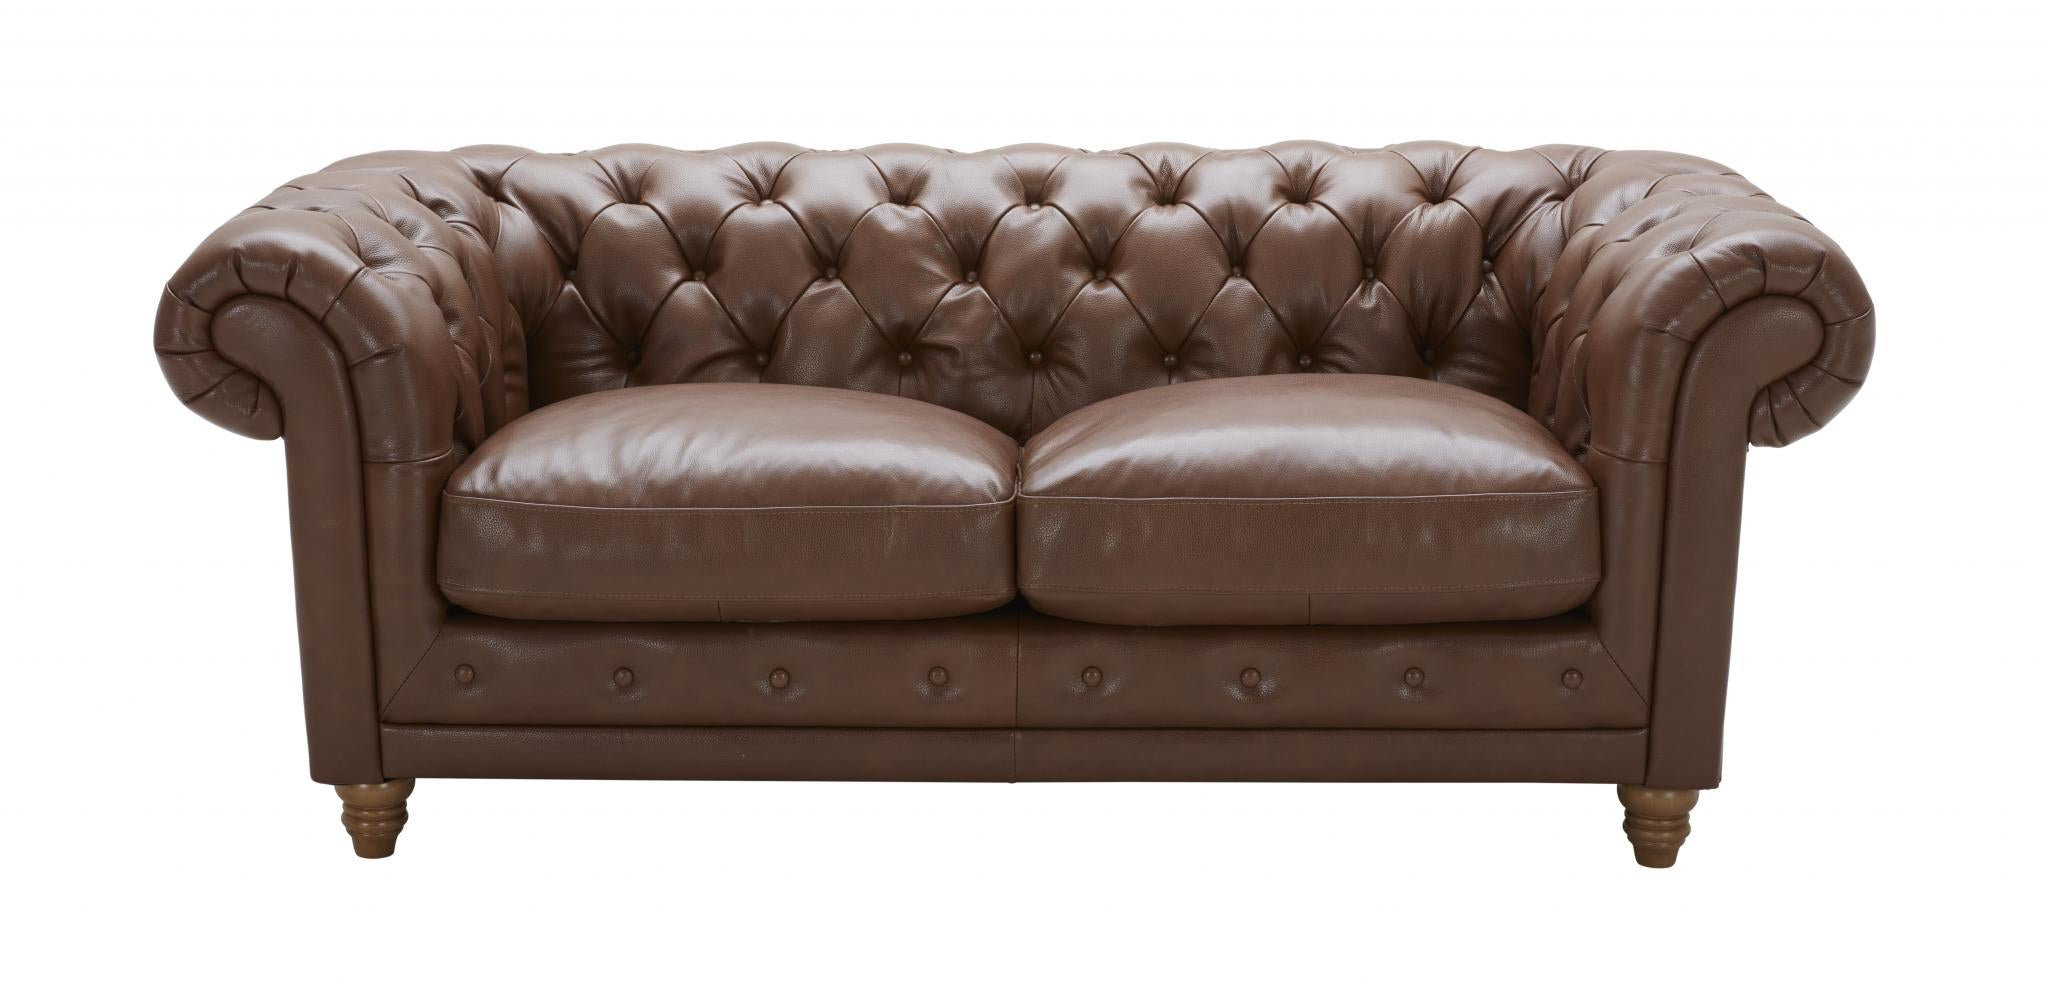 sofa under cheap living inexpensive sectional couch large gray loveseat sets of loveseats size full shaped sofas u room